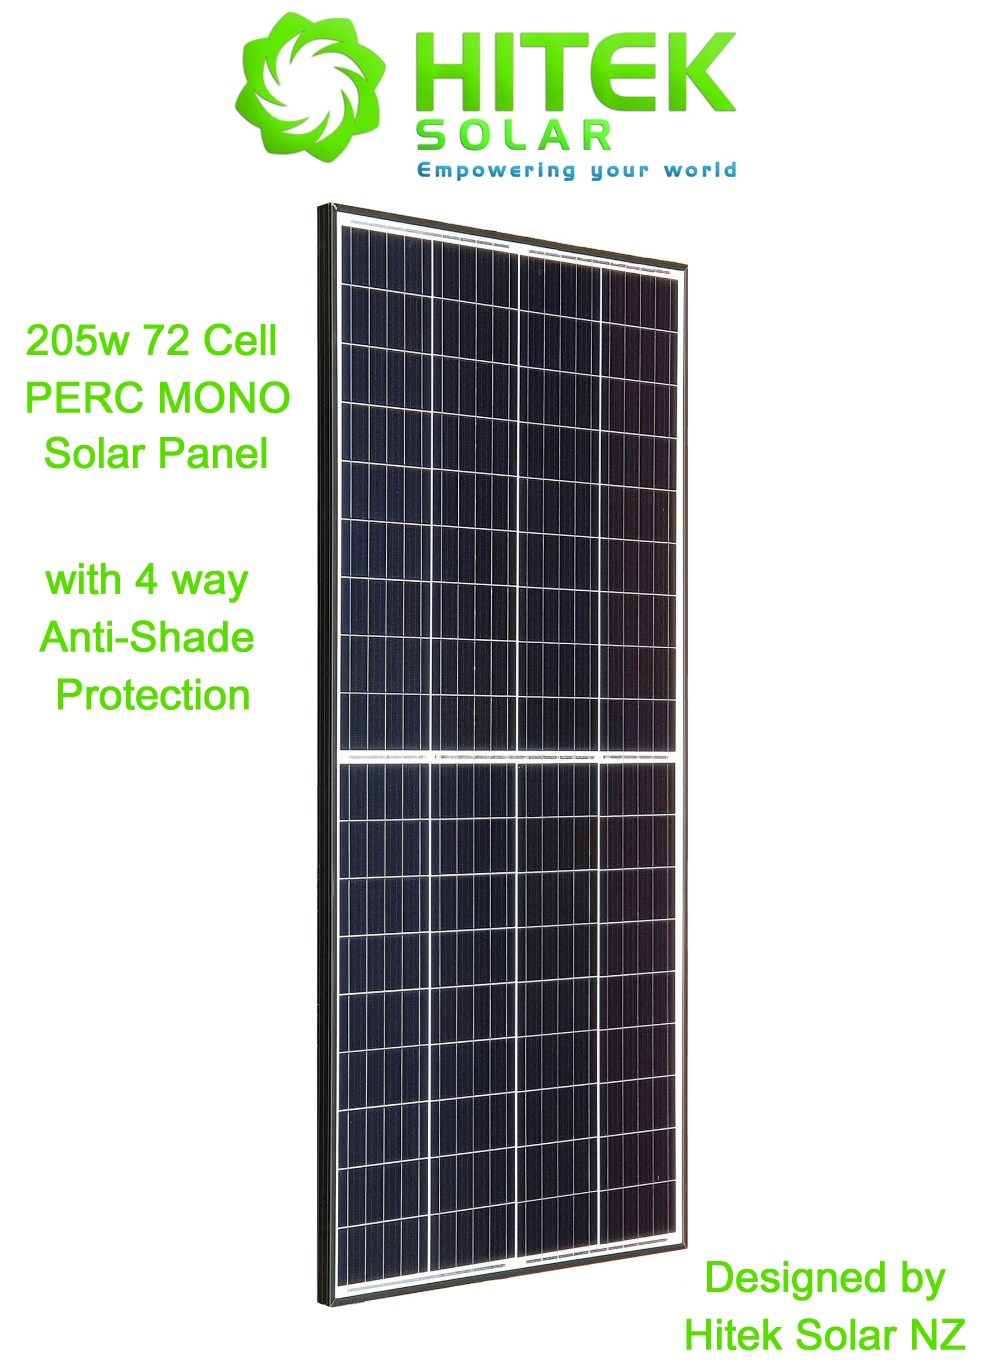 205w PERC MONO Solar Panel (Latest Technology for 2020)